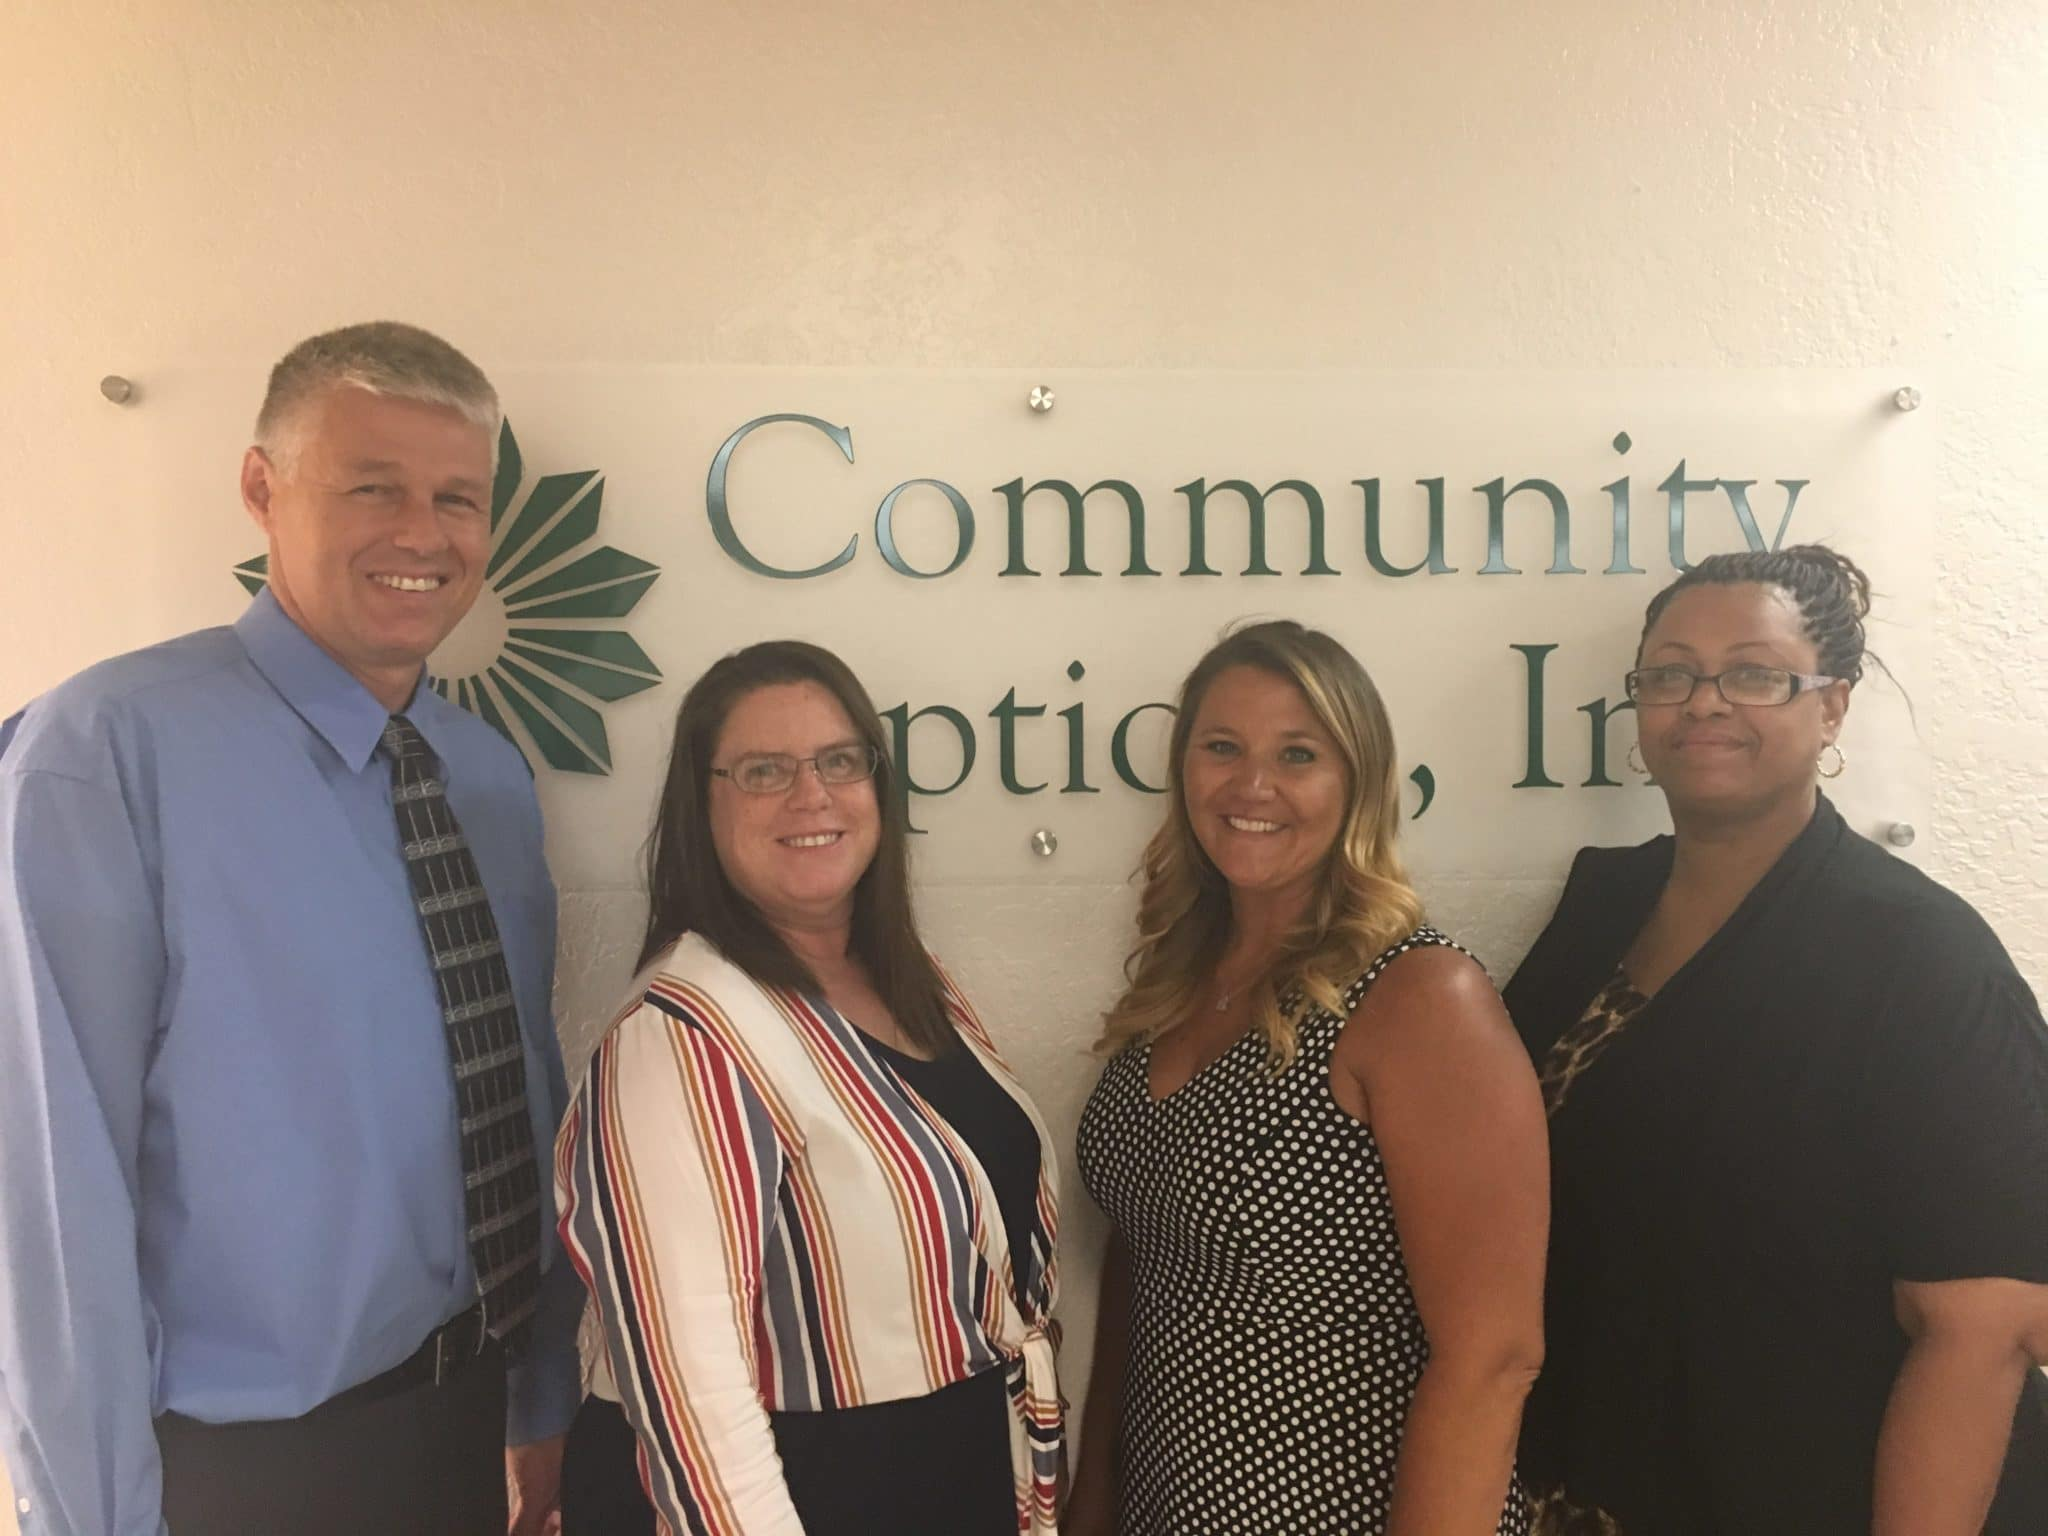 Community Options, Inc. of Tempe, AZ was established in 2017 to provide community-based options for residential and employment support services to individuals with disabilities living in the Greater Phoenix region including Gilbert, Mesa, Phoenix, Scottsdale, Tempe and other local areas.